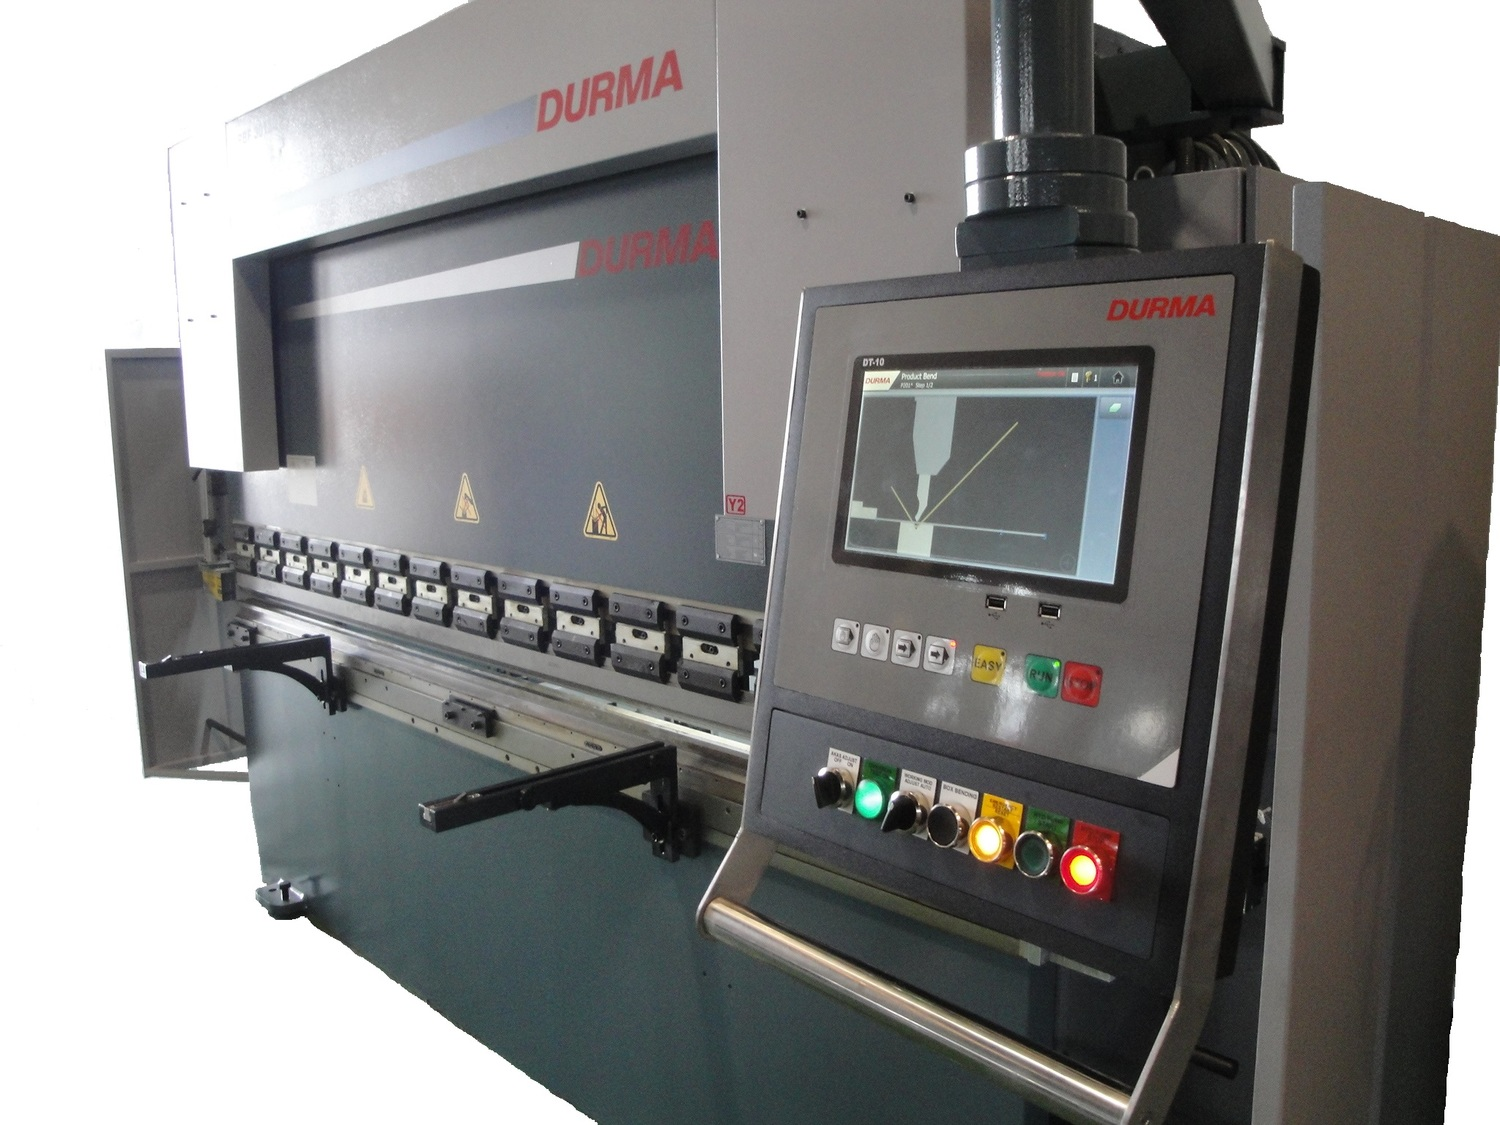 INTRODUCING THE FIGHTER SERIES OF DURMA PRESS BRAKE